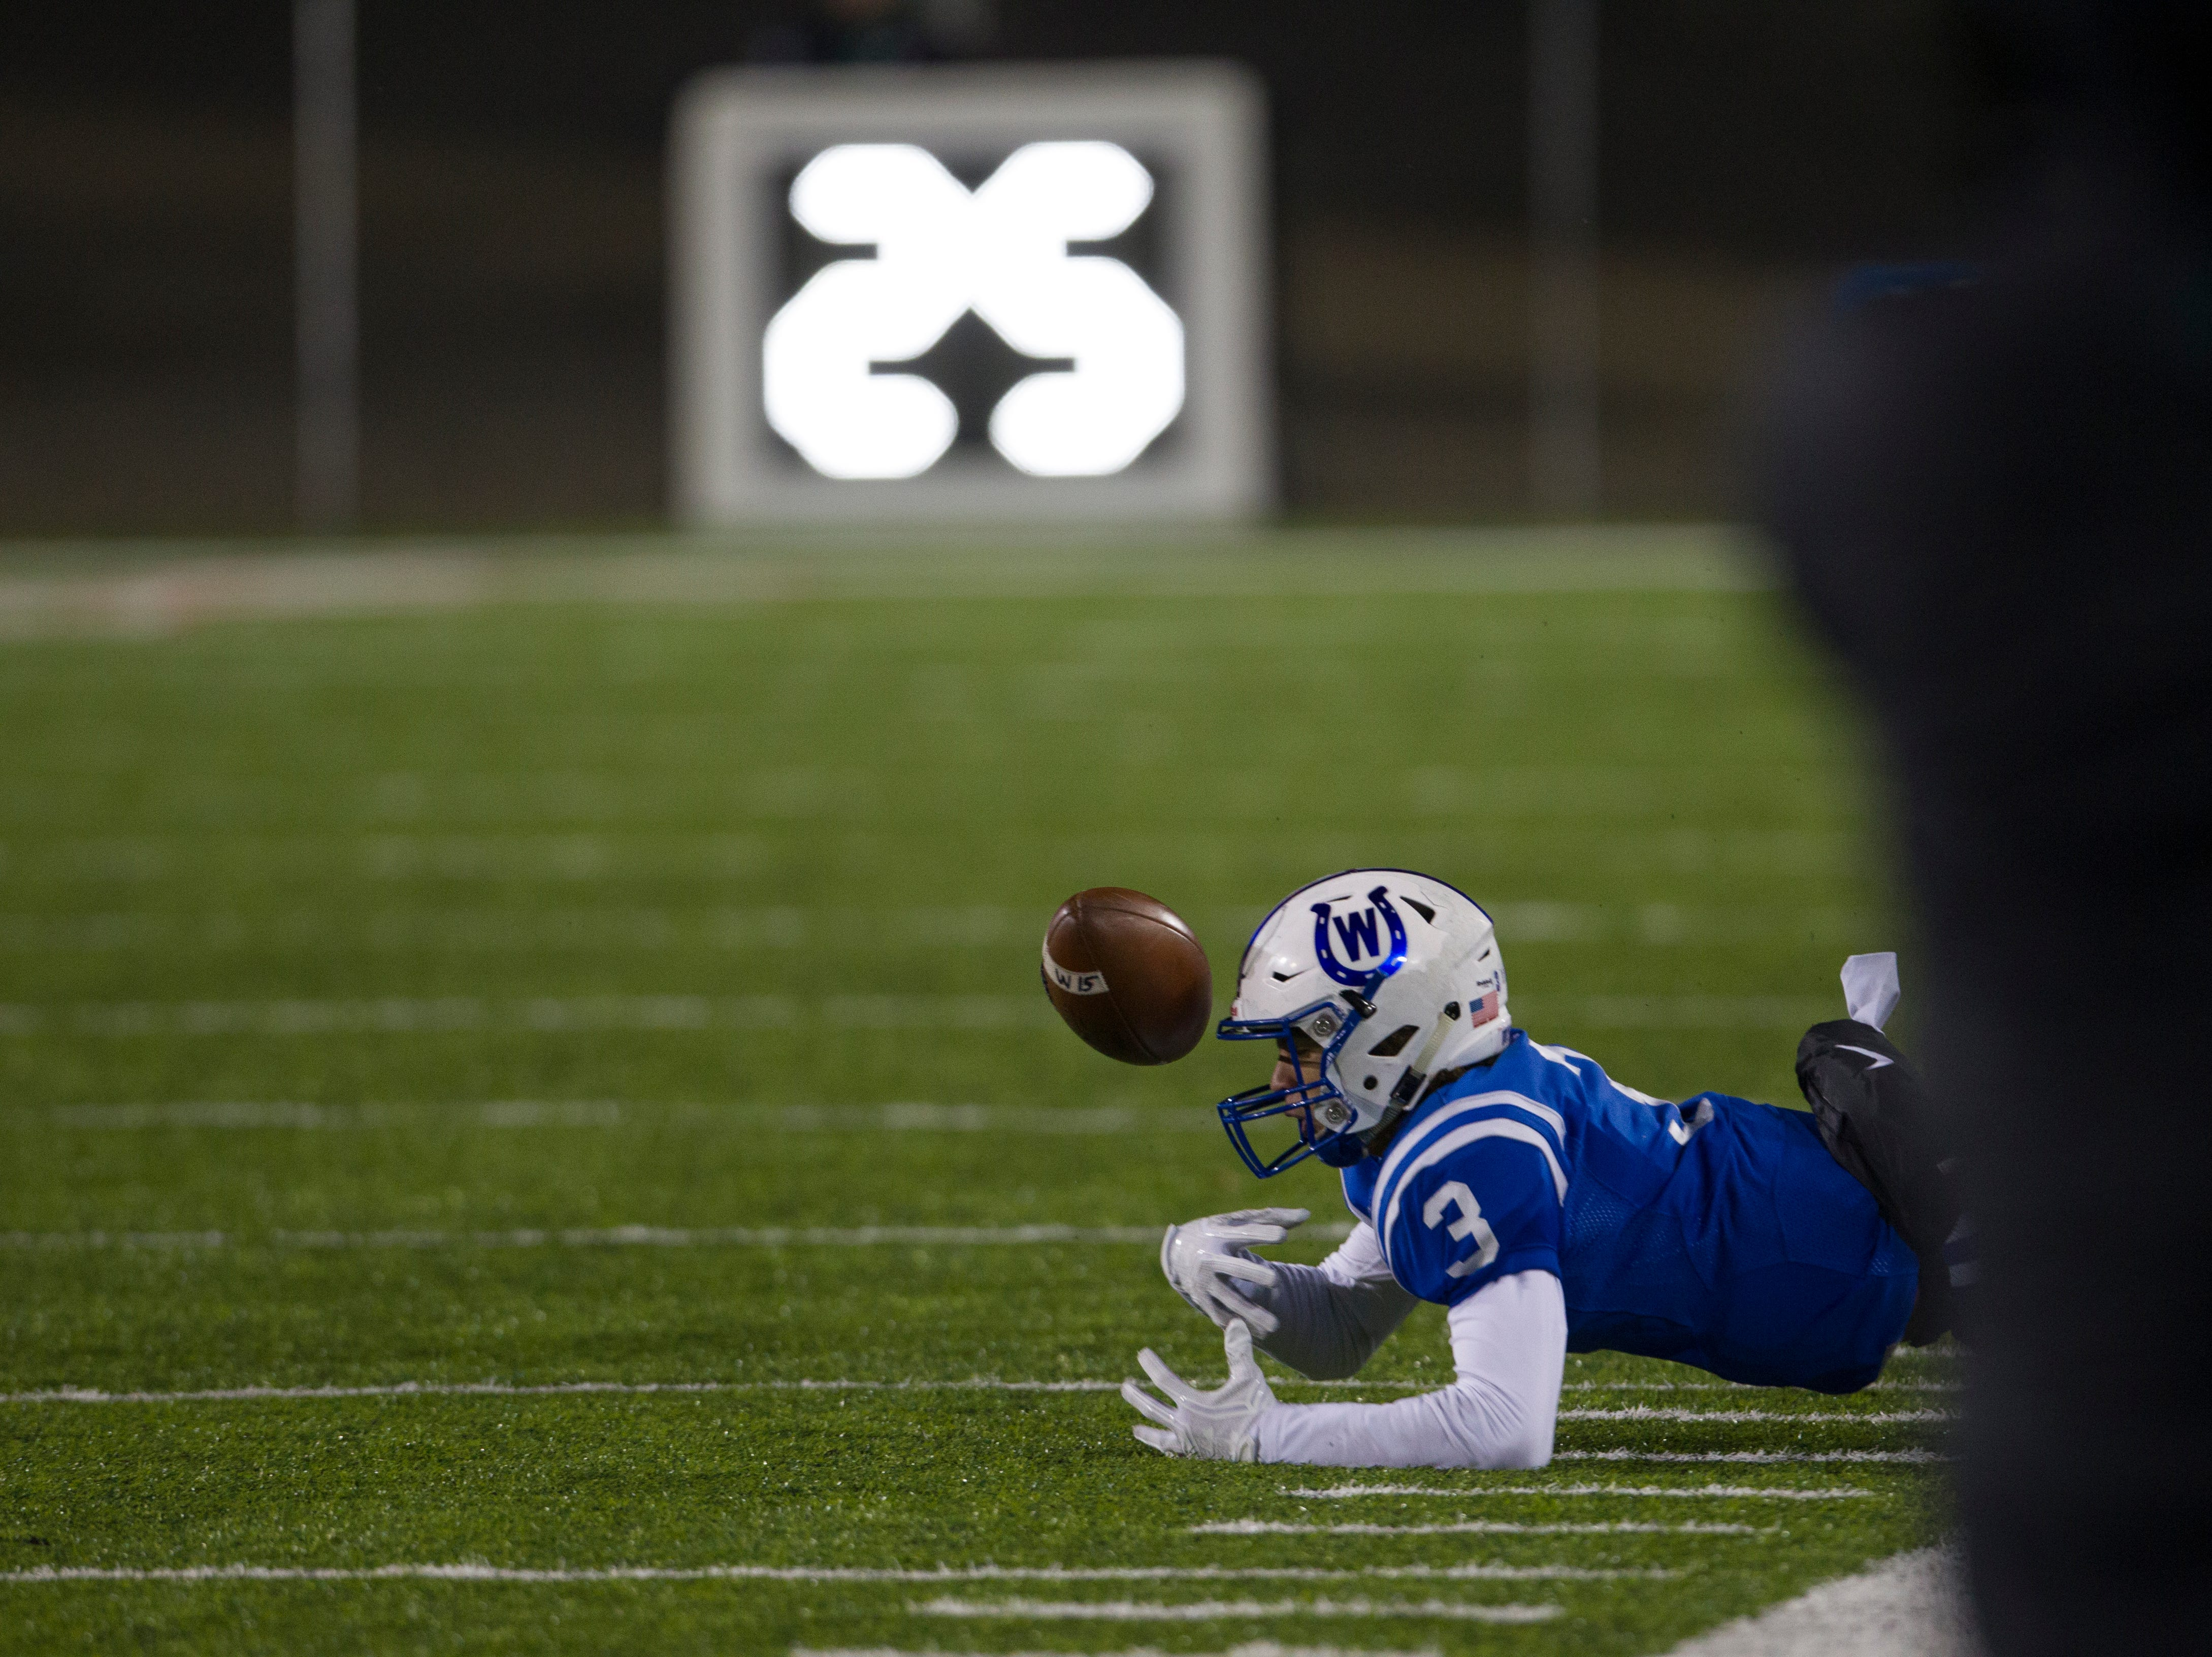 Wyoming's Evan Prater (3) fumbles during the first half of the OHSAA Division IV State Championship football game between Wyoming and Girard on Saturday, Dec. 1, 2018, at Tom Benson Stadium in Canton.